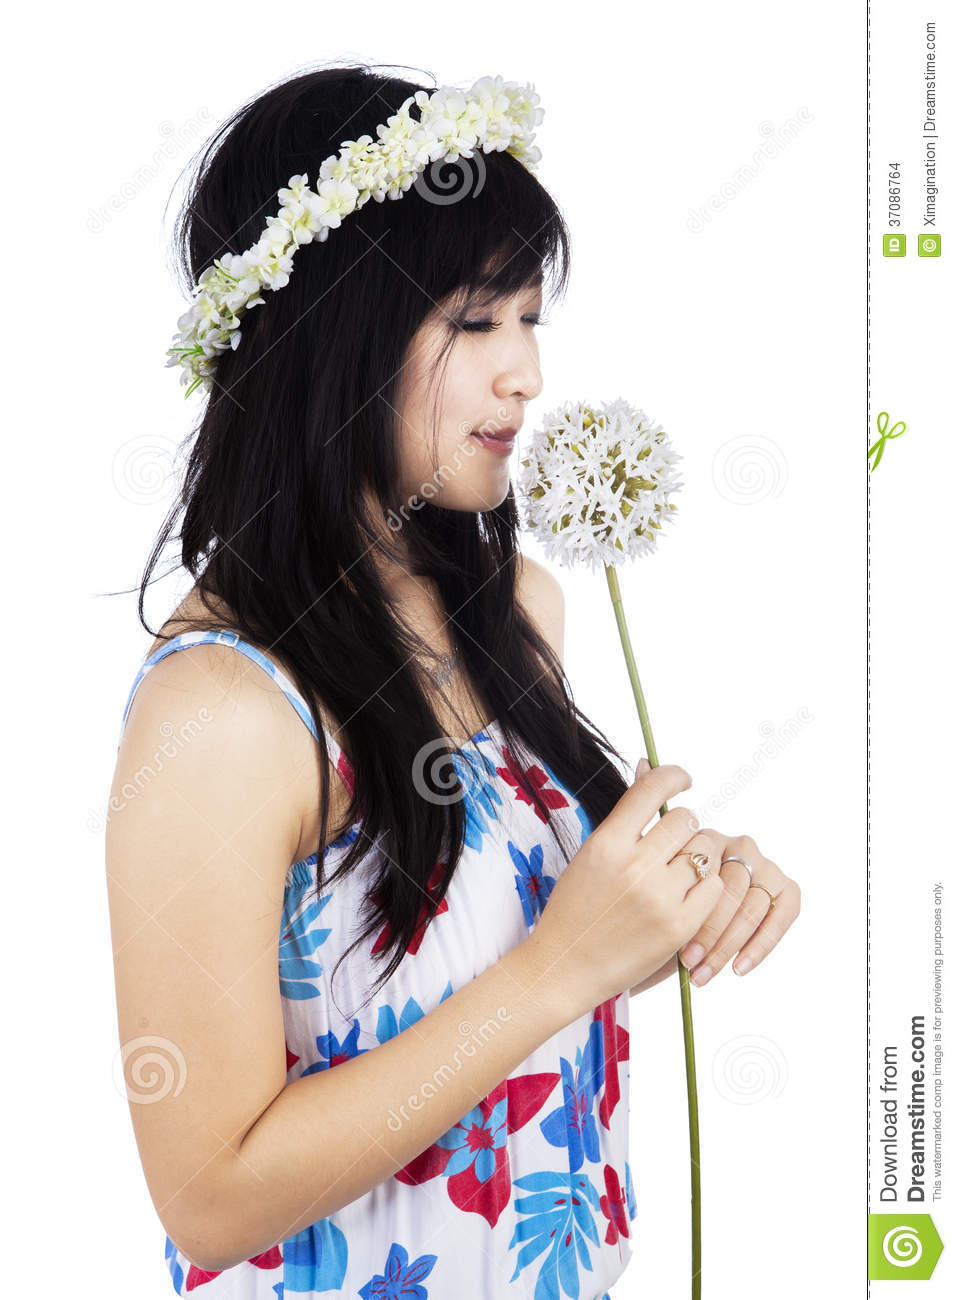 Girl is smelling a flower